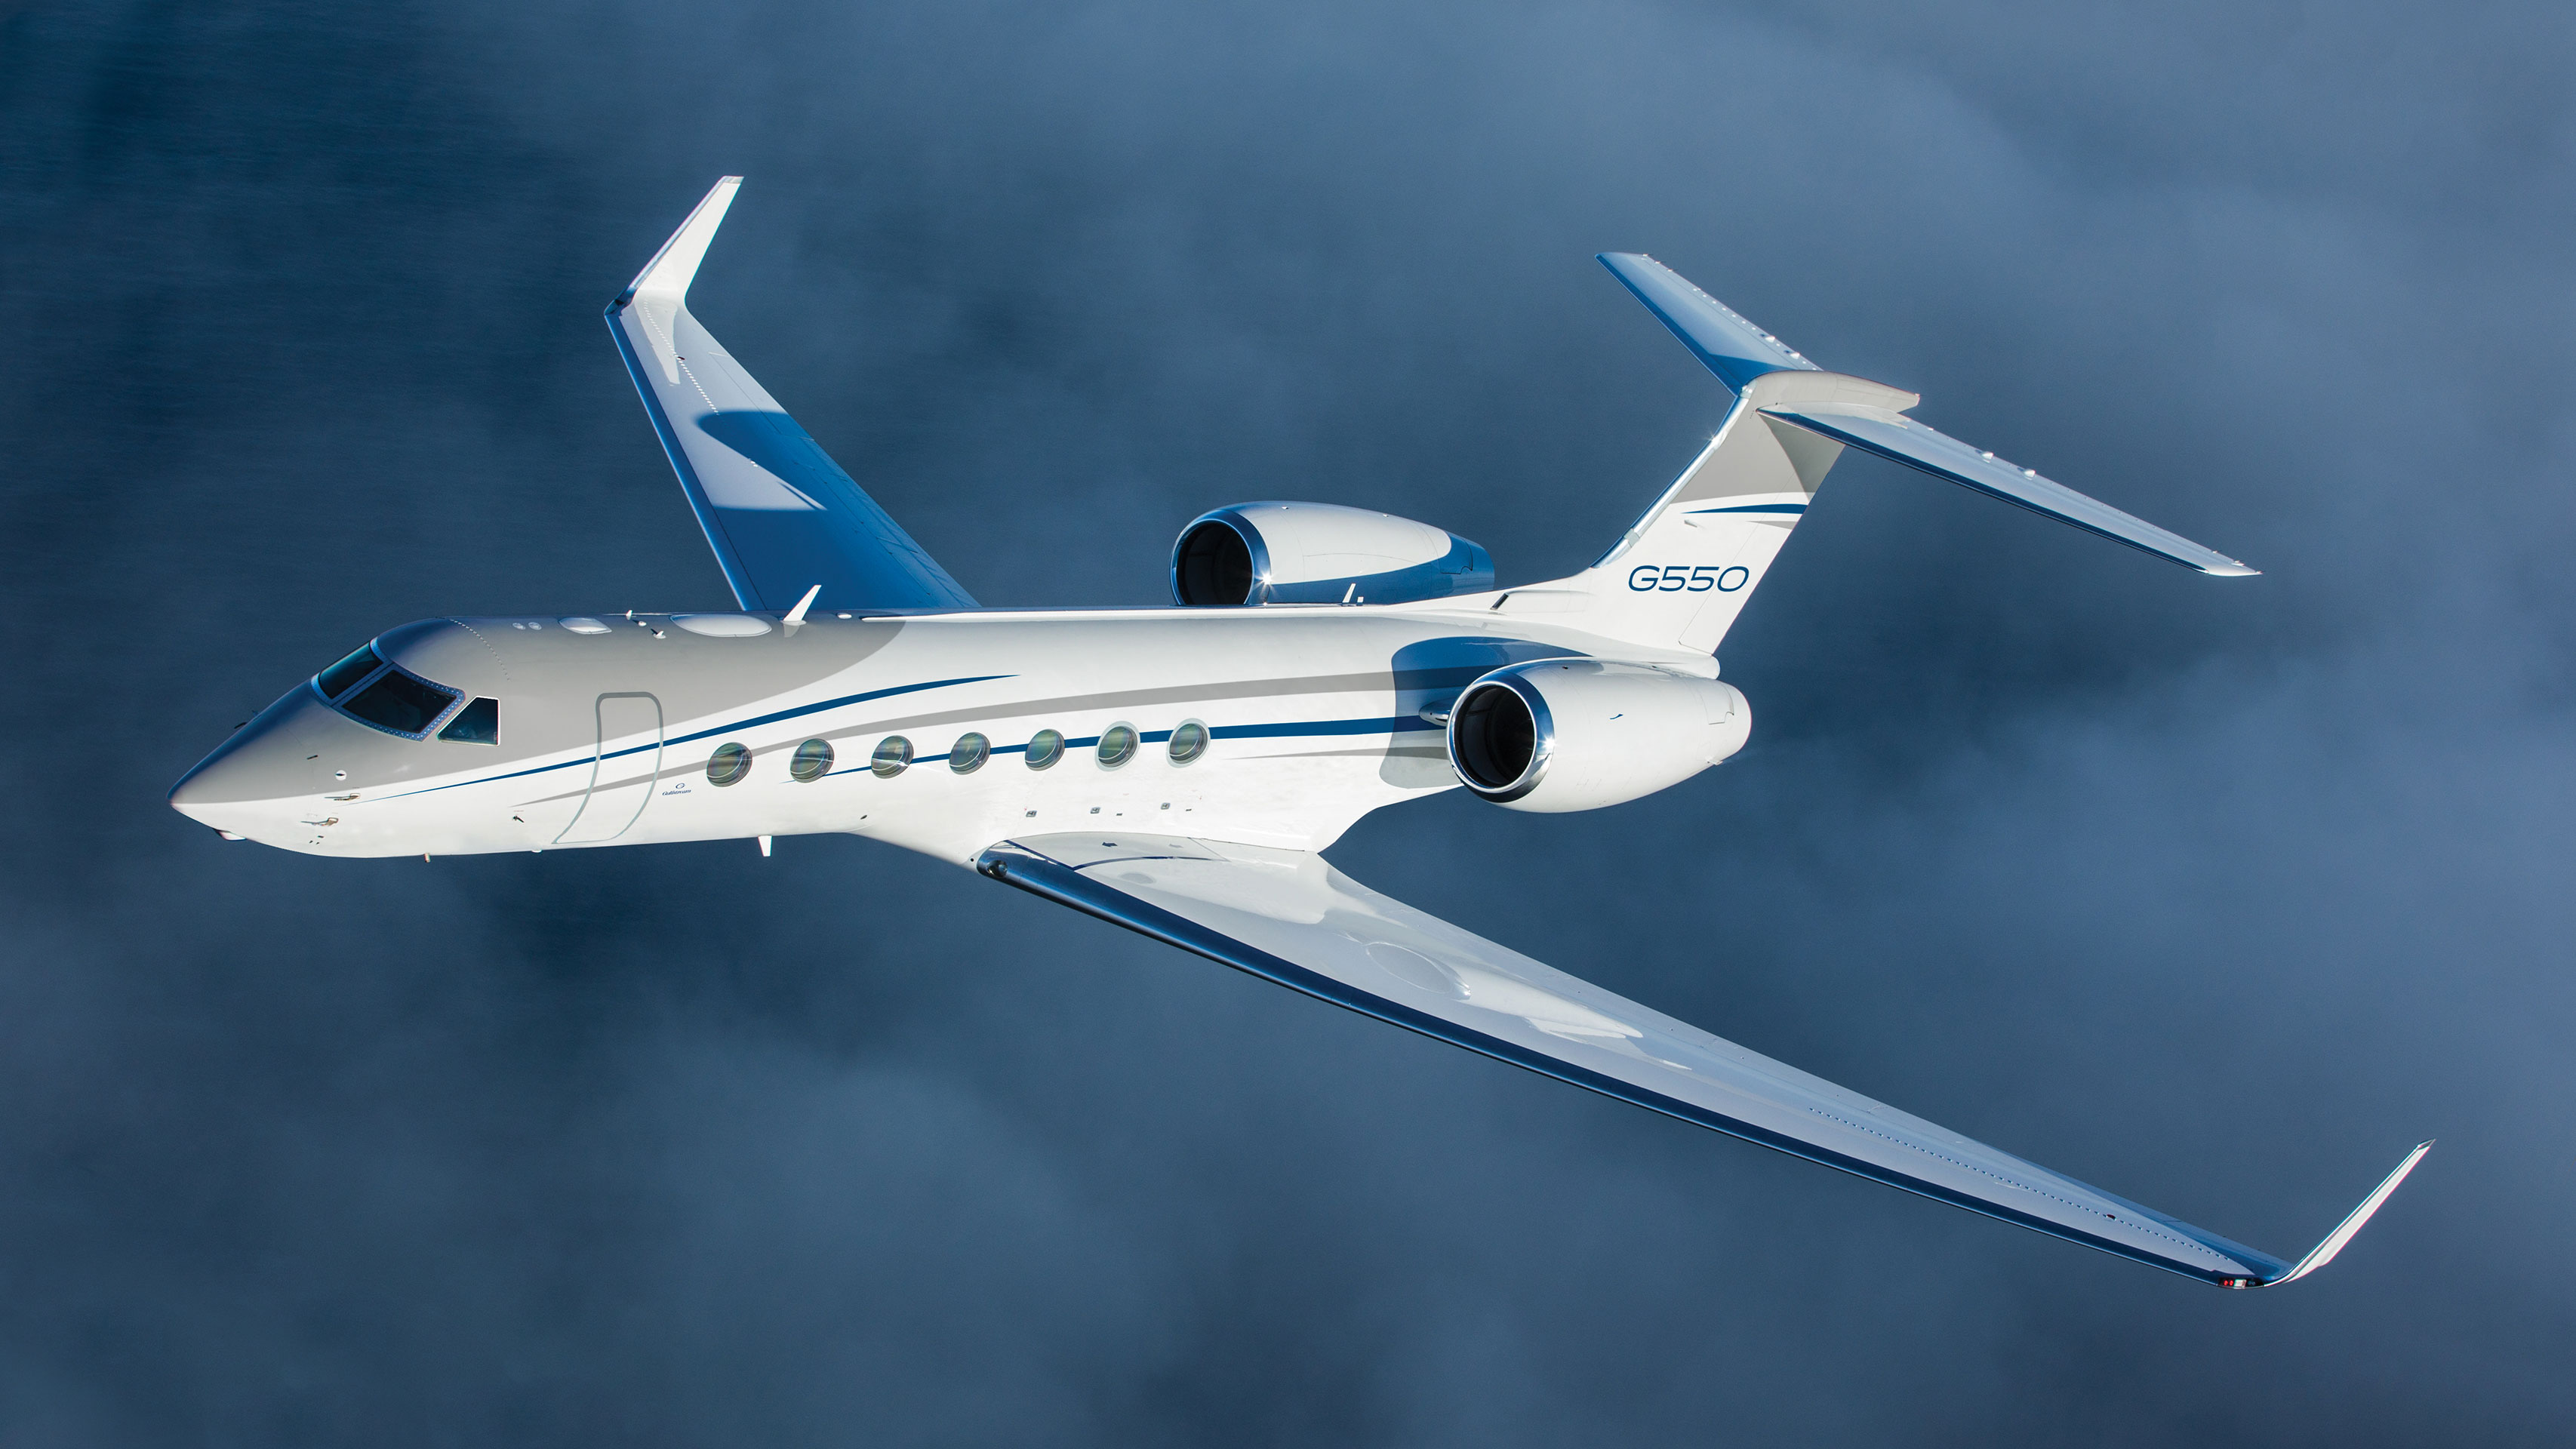 G550 flying in the clouds